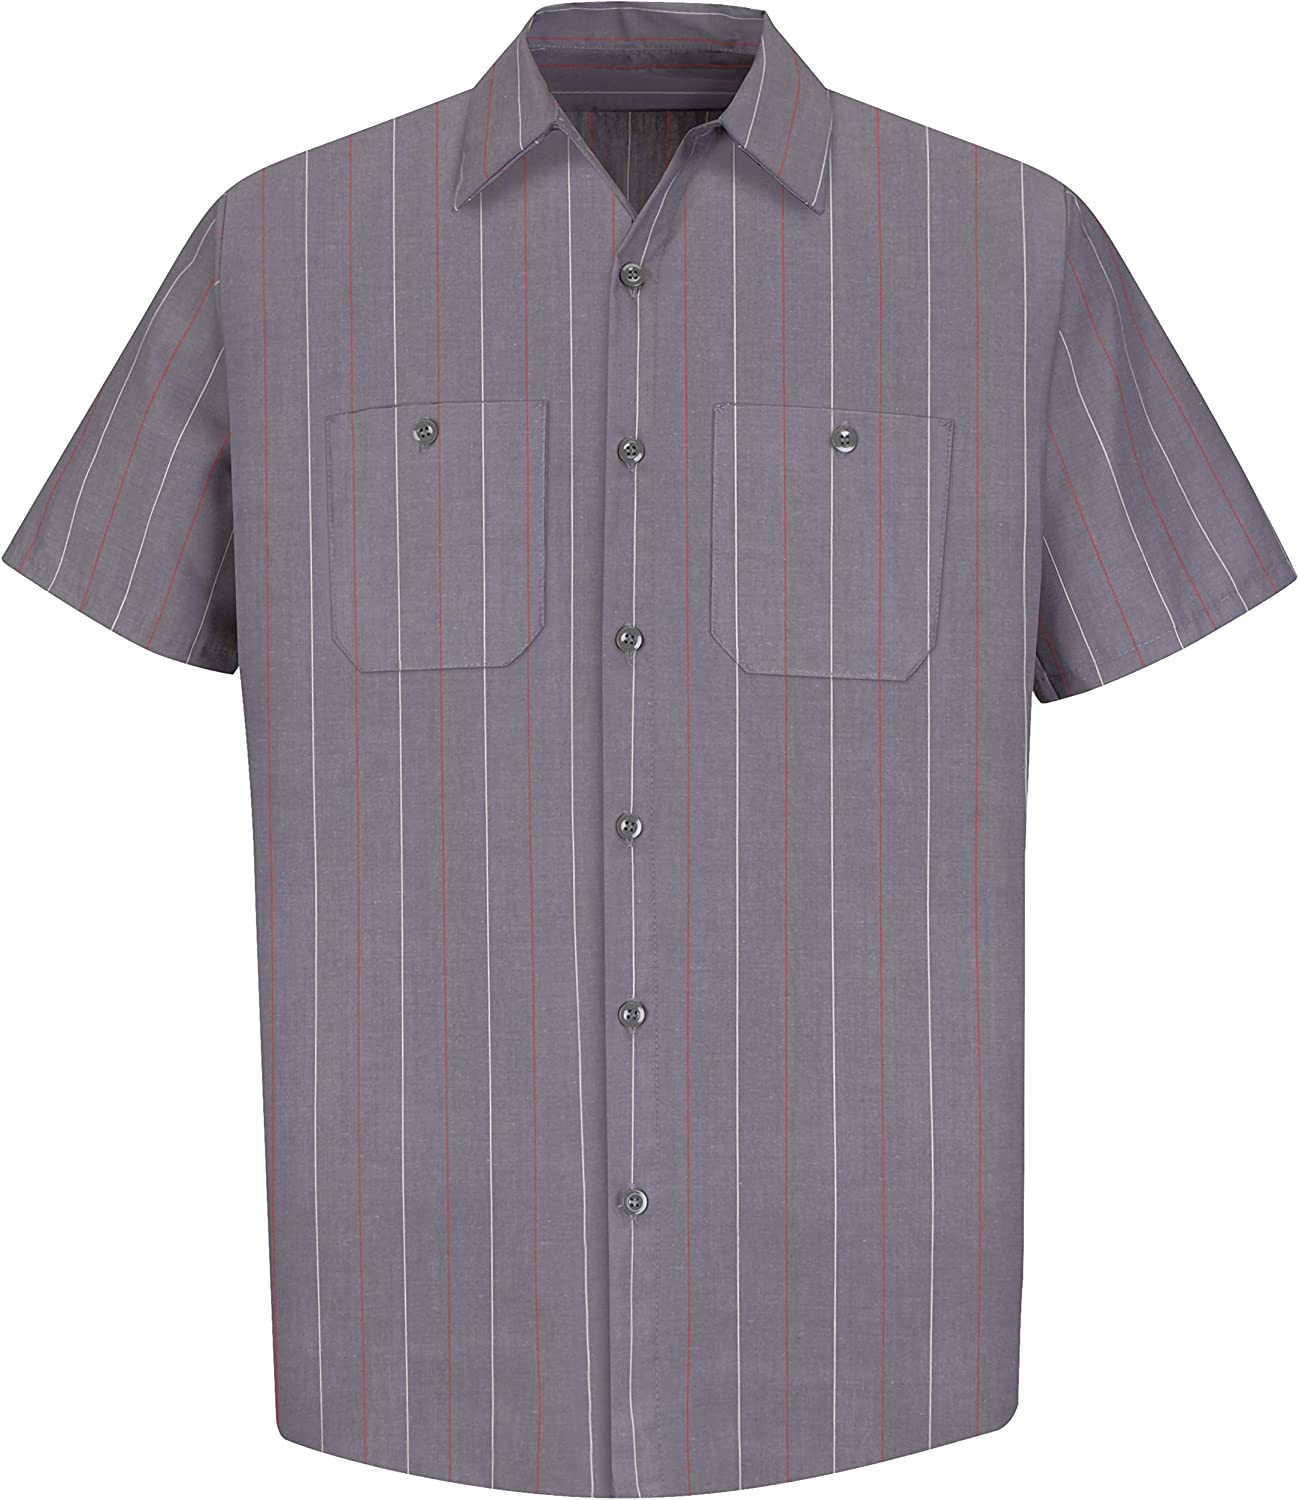 Red Kap Mens Striped Industrial Work Shirt with Pencil Stall Regular Fit Short Sleeve